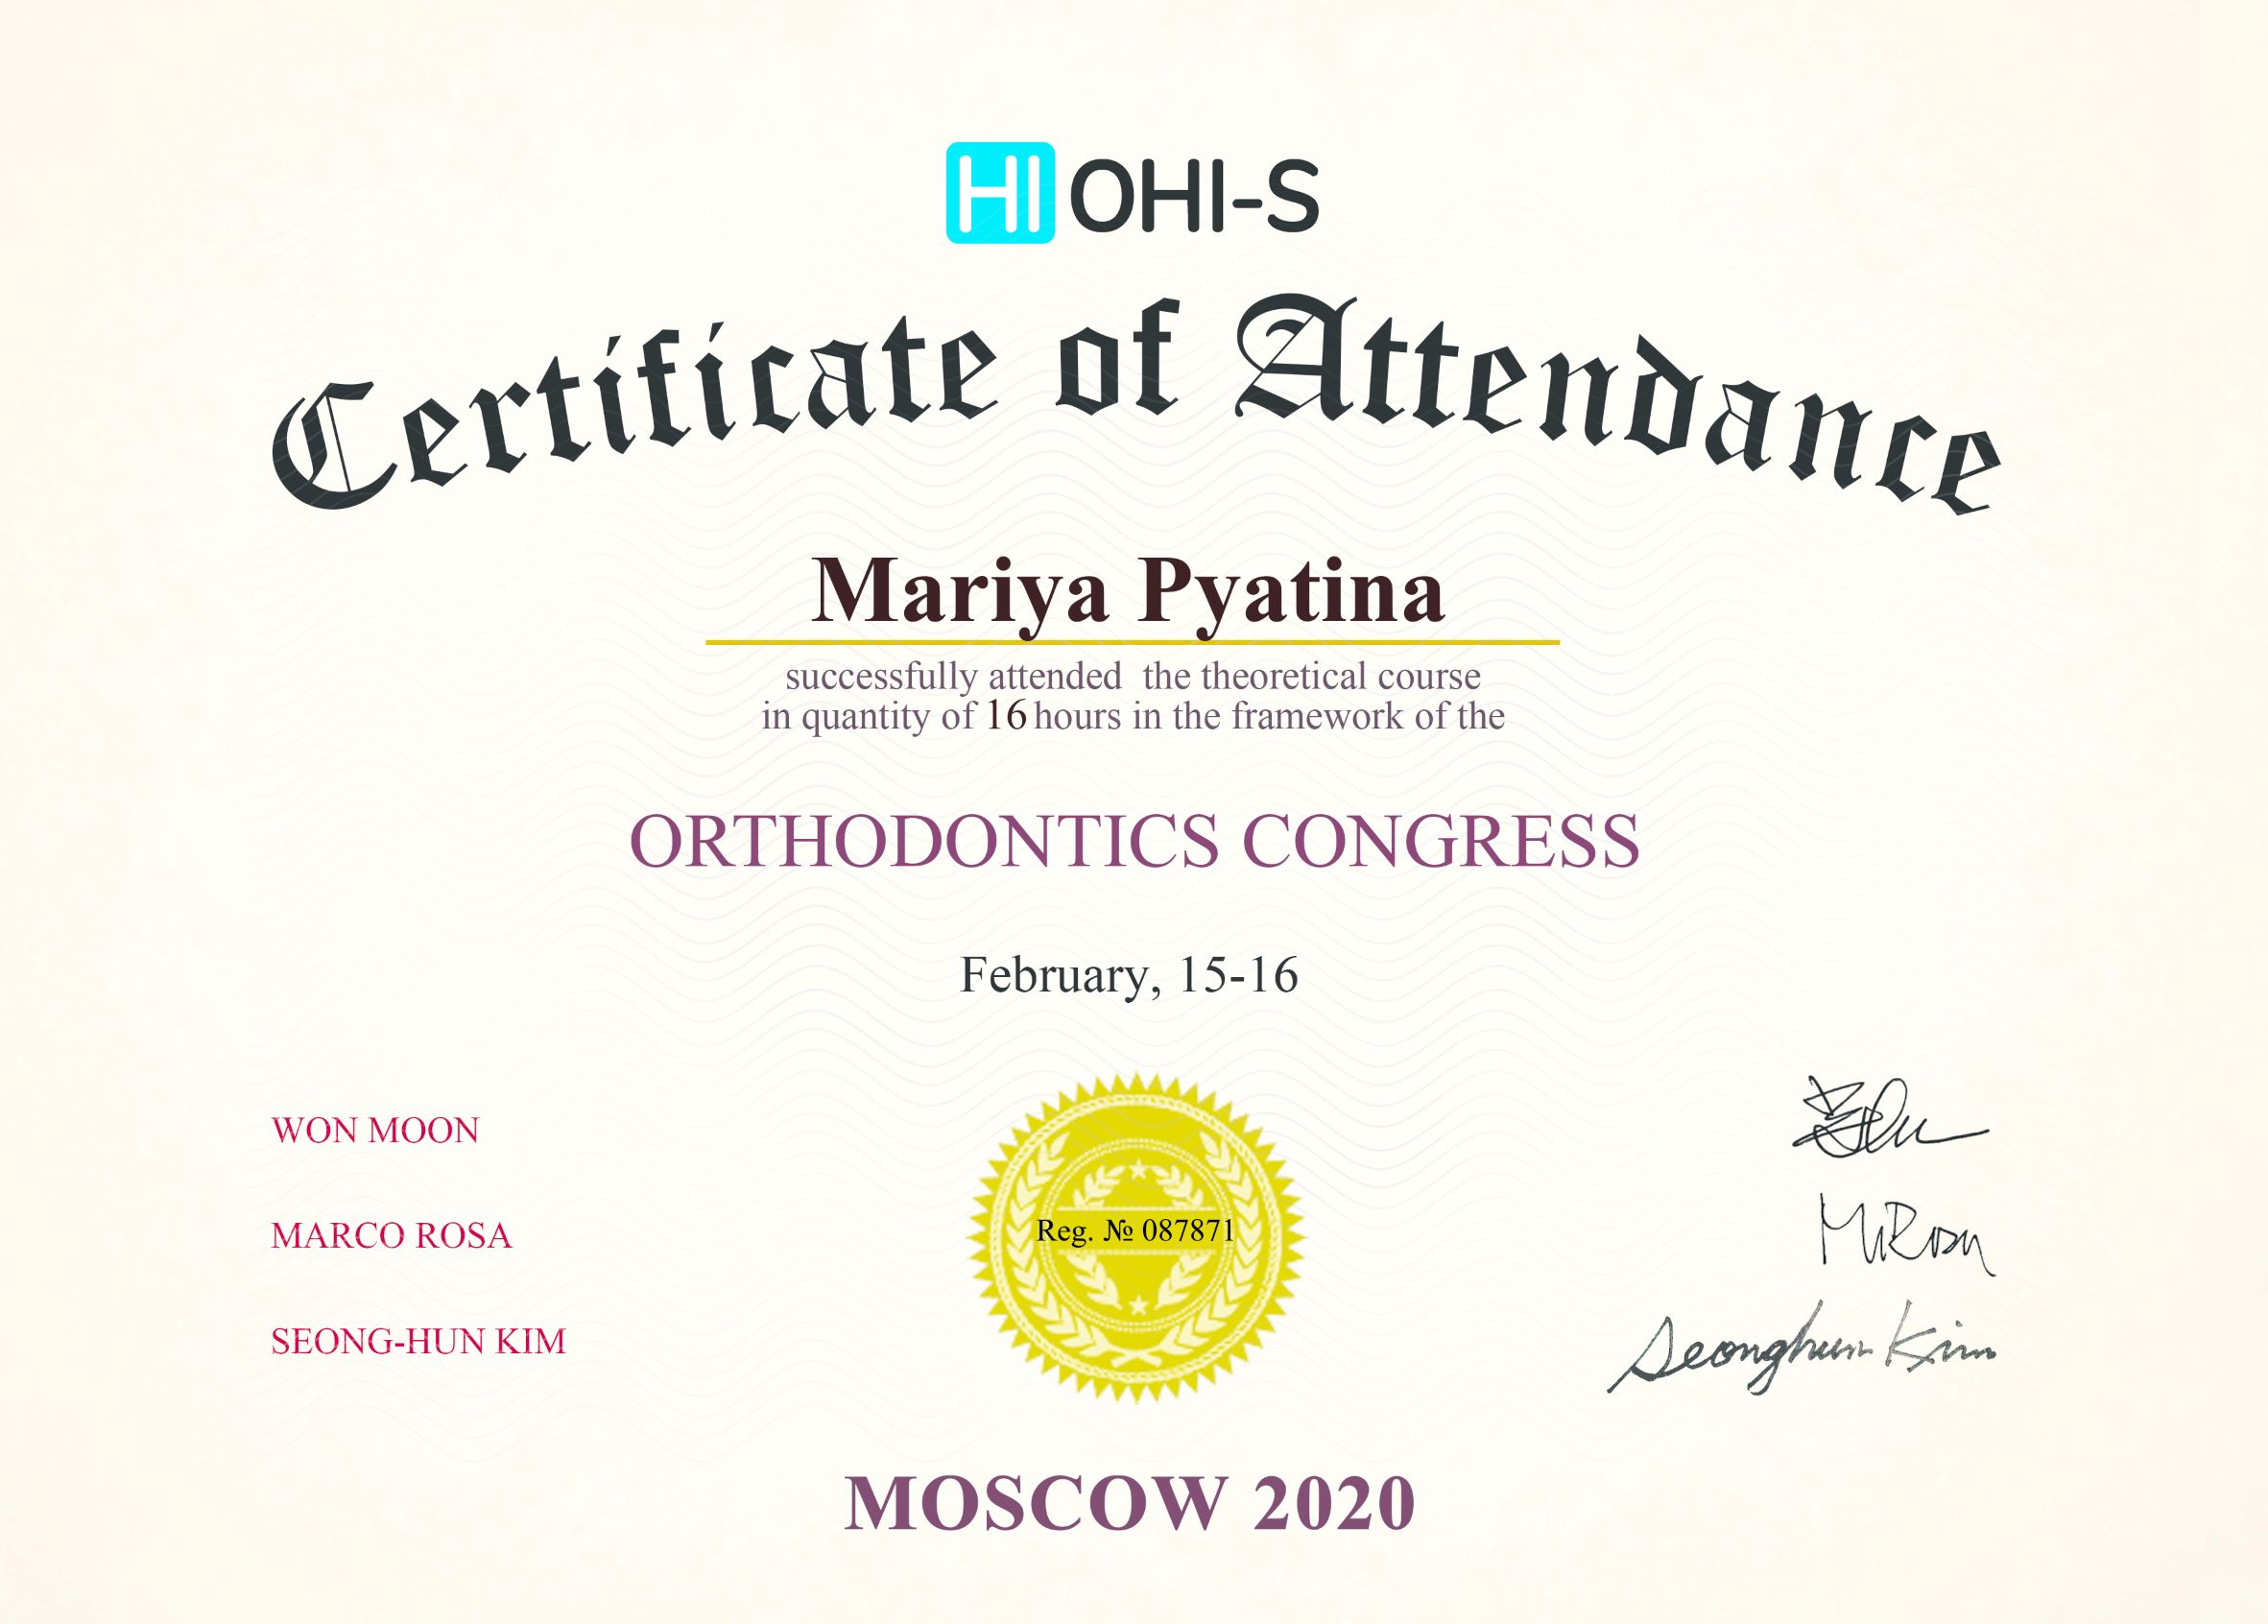 2020, HI OHI-S, Moscow